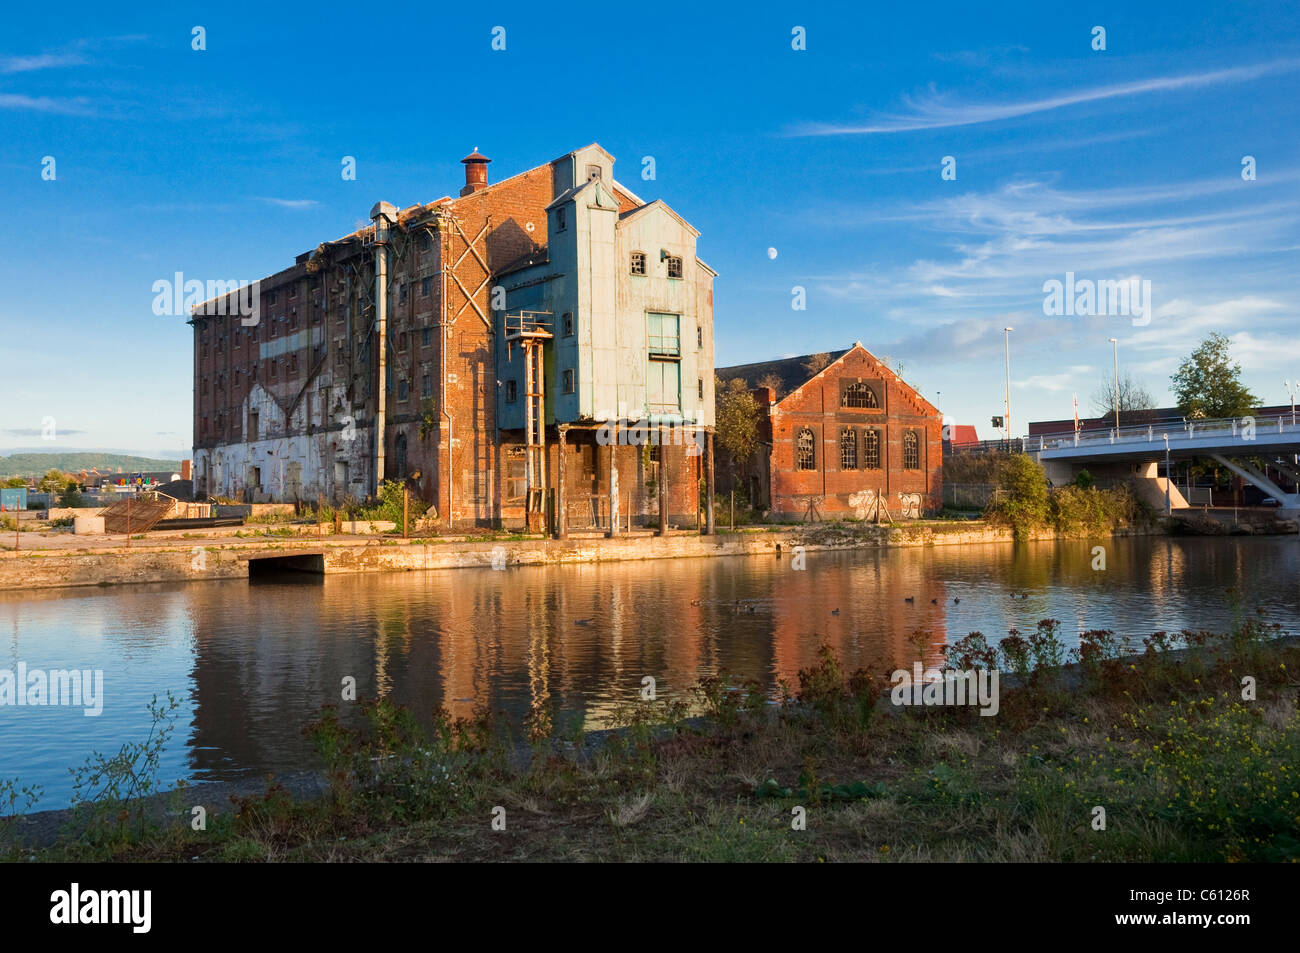 Old derelict warehouses, Gloucester and Sharpness Canal, Gloucester Docks, Gloucestershire, UK. - Stock Image